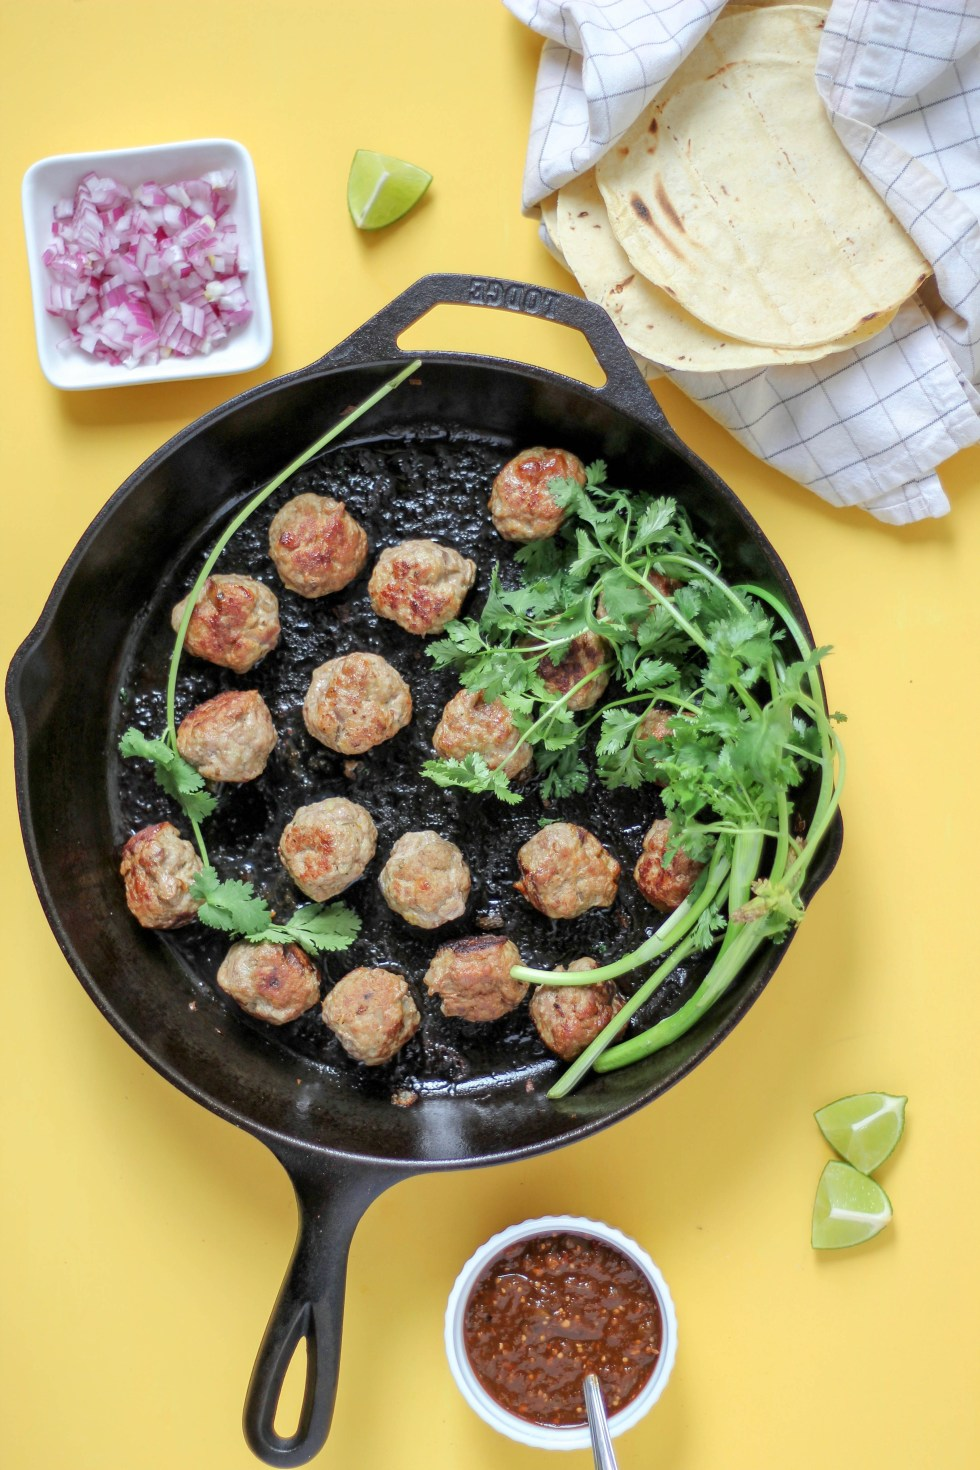 Juicy meatballs with caramelized edges, mounded up with onions, cilantro, and guac. Carnitas Meatball Tacos are an easy, weeknight variation of classic carnitas. Use lentils and make them vegetarian!